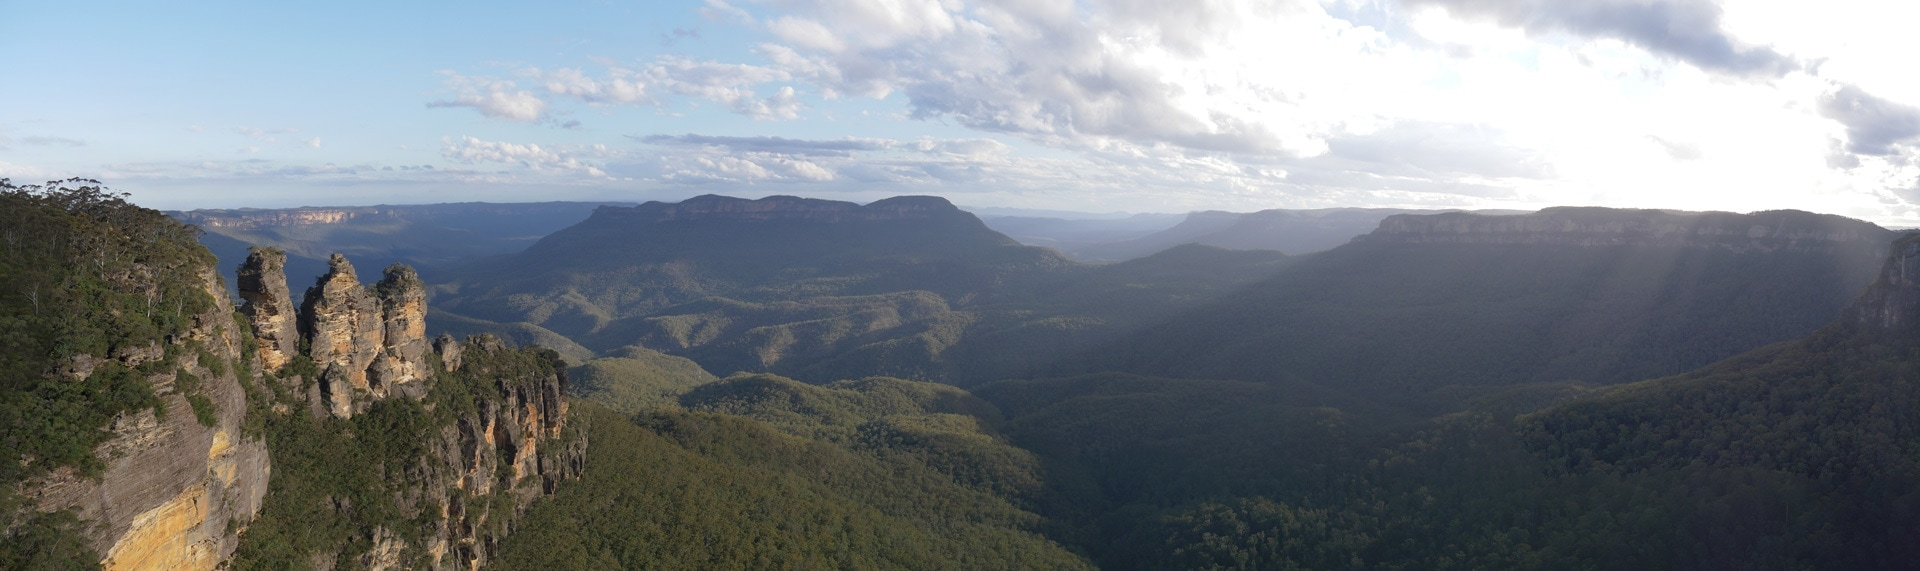 Les Blue Mountains, à 2h de Sydney en voiture ou train 1